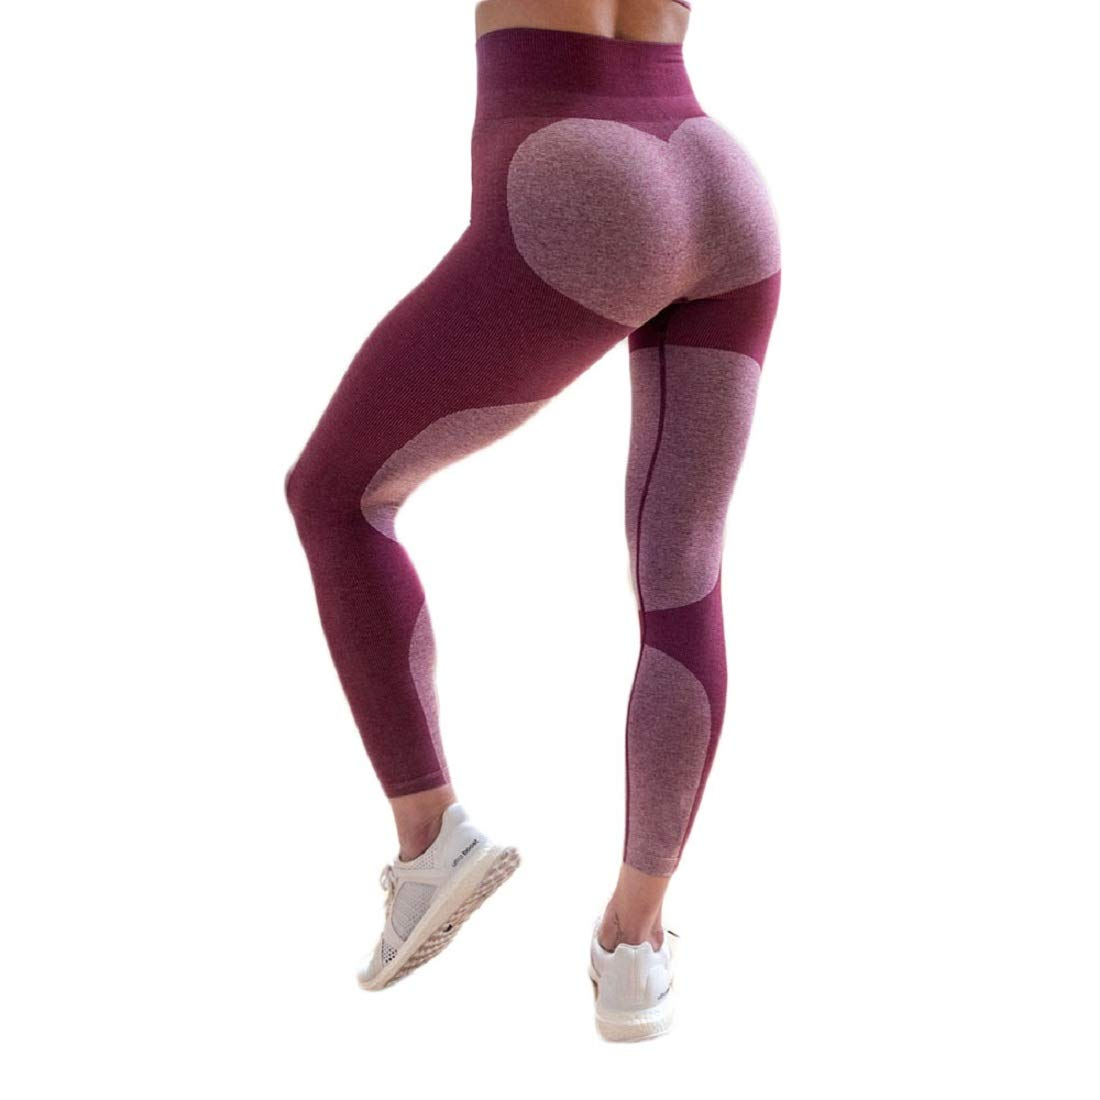 CSSD Women {Yoga} {Geometry Printed} {Patchwork Sweatpants} Workout Gym {Fitness Leggings} {Sports Pants} {Athletic Clothes} Dance Cropped Leggings {High Waist} {Stretch Trousers} (Red, XL)